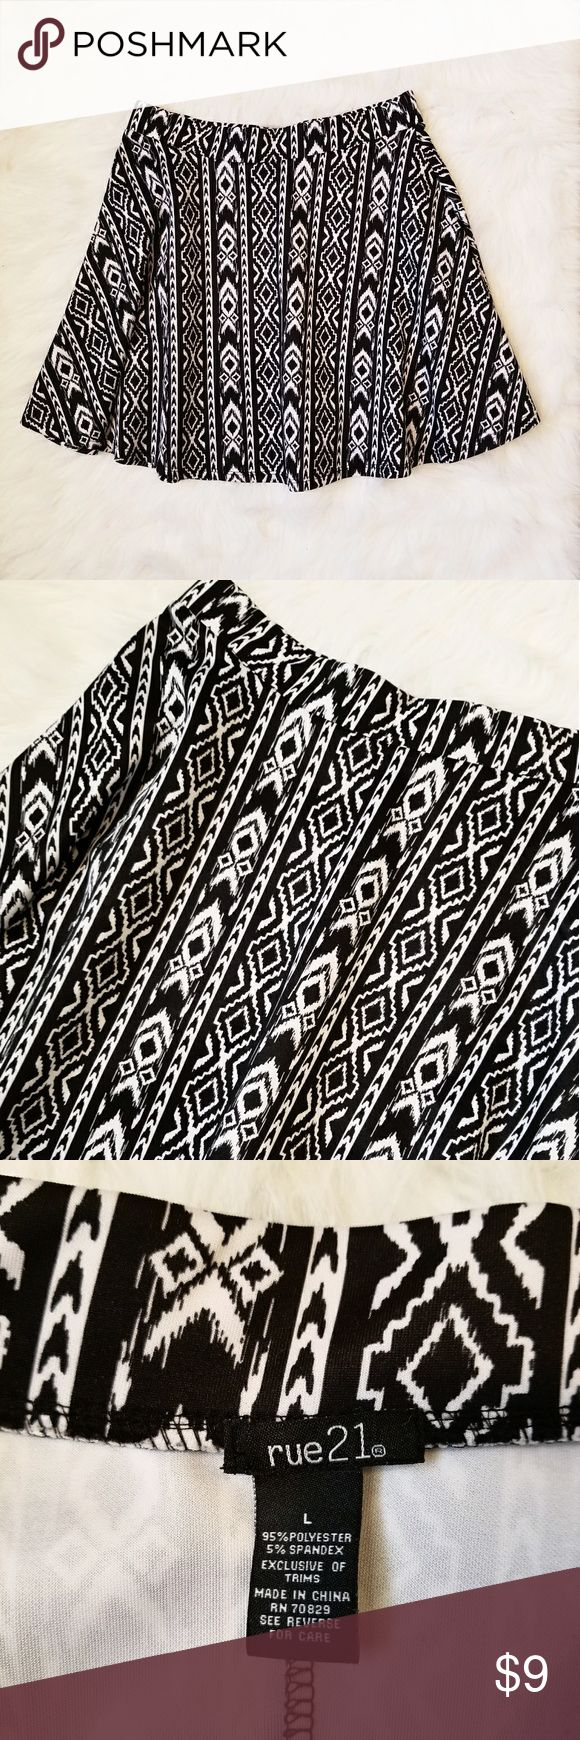 Aztec Print Skirt Black and white Aztec Print Skirt. True to size. Rue 21 Skirts A-Line or Full